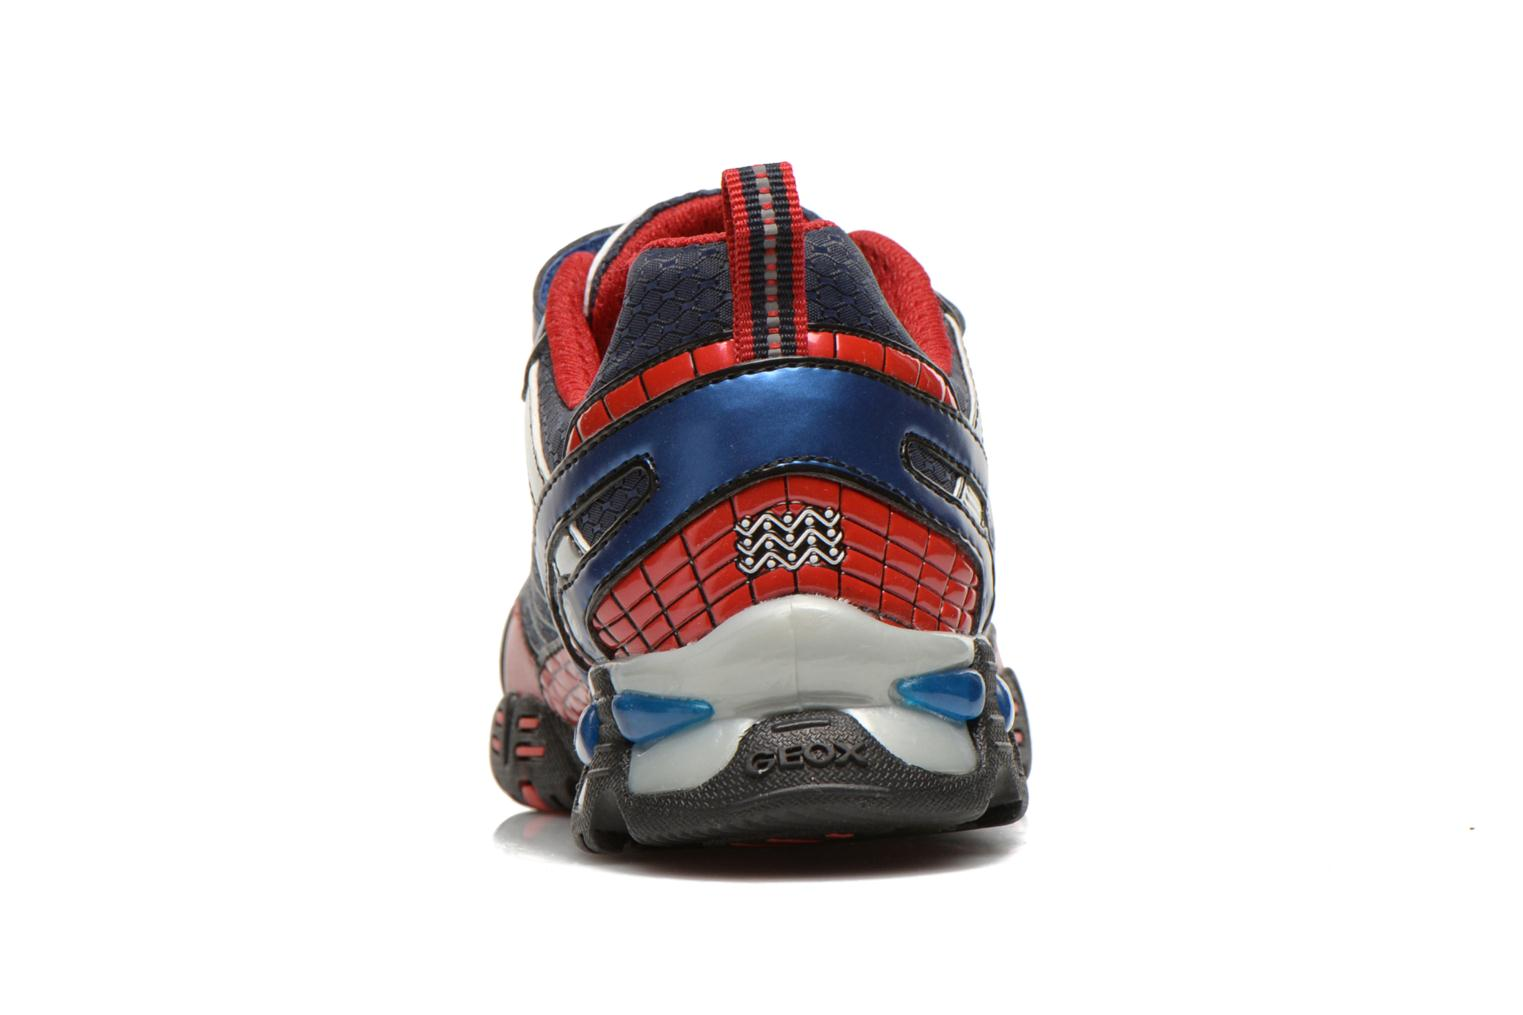 J LT ECLIPSE A Blue/red